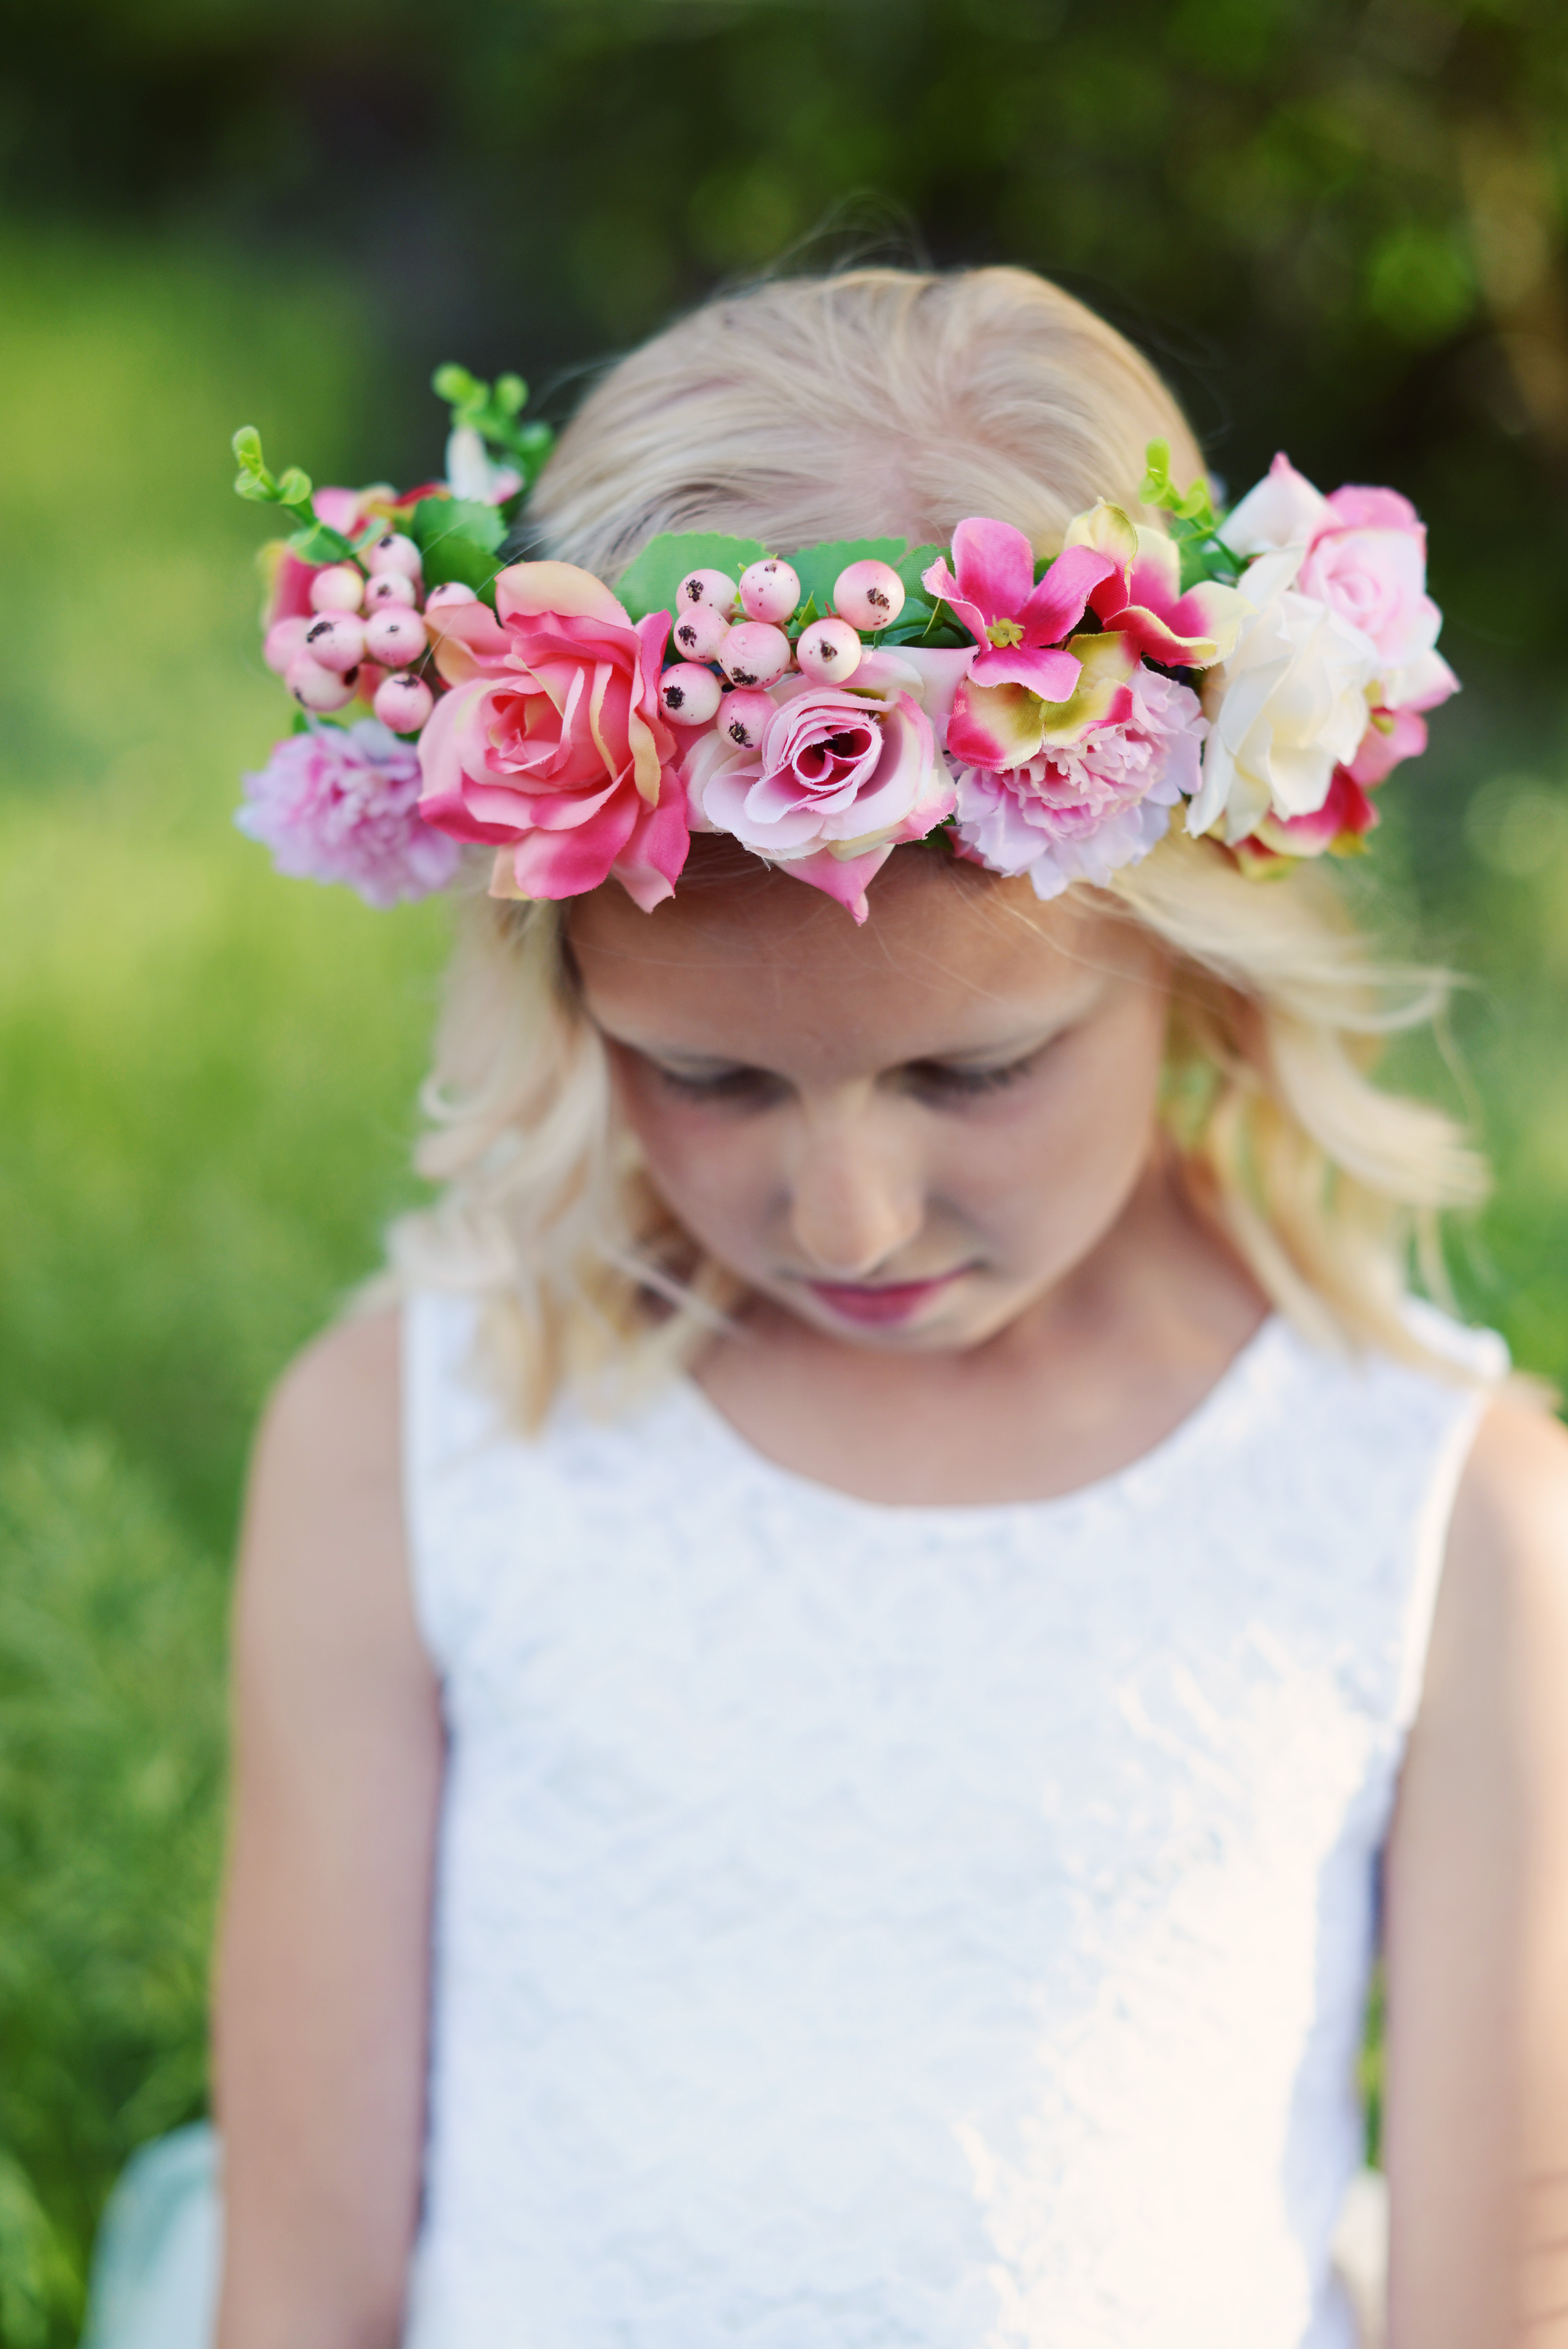 Visit our range of handmade floral hair crowns and wreaths by gilly an ivory and pink flower girl wreath with pink flowers and leaf green accents izmirmasajfo